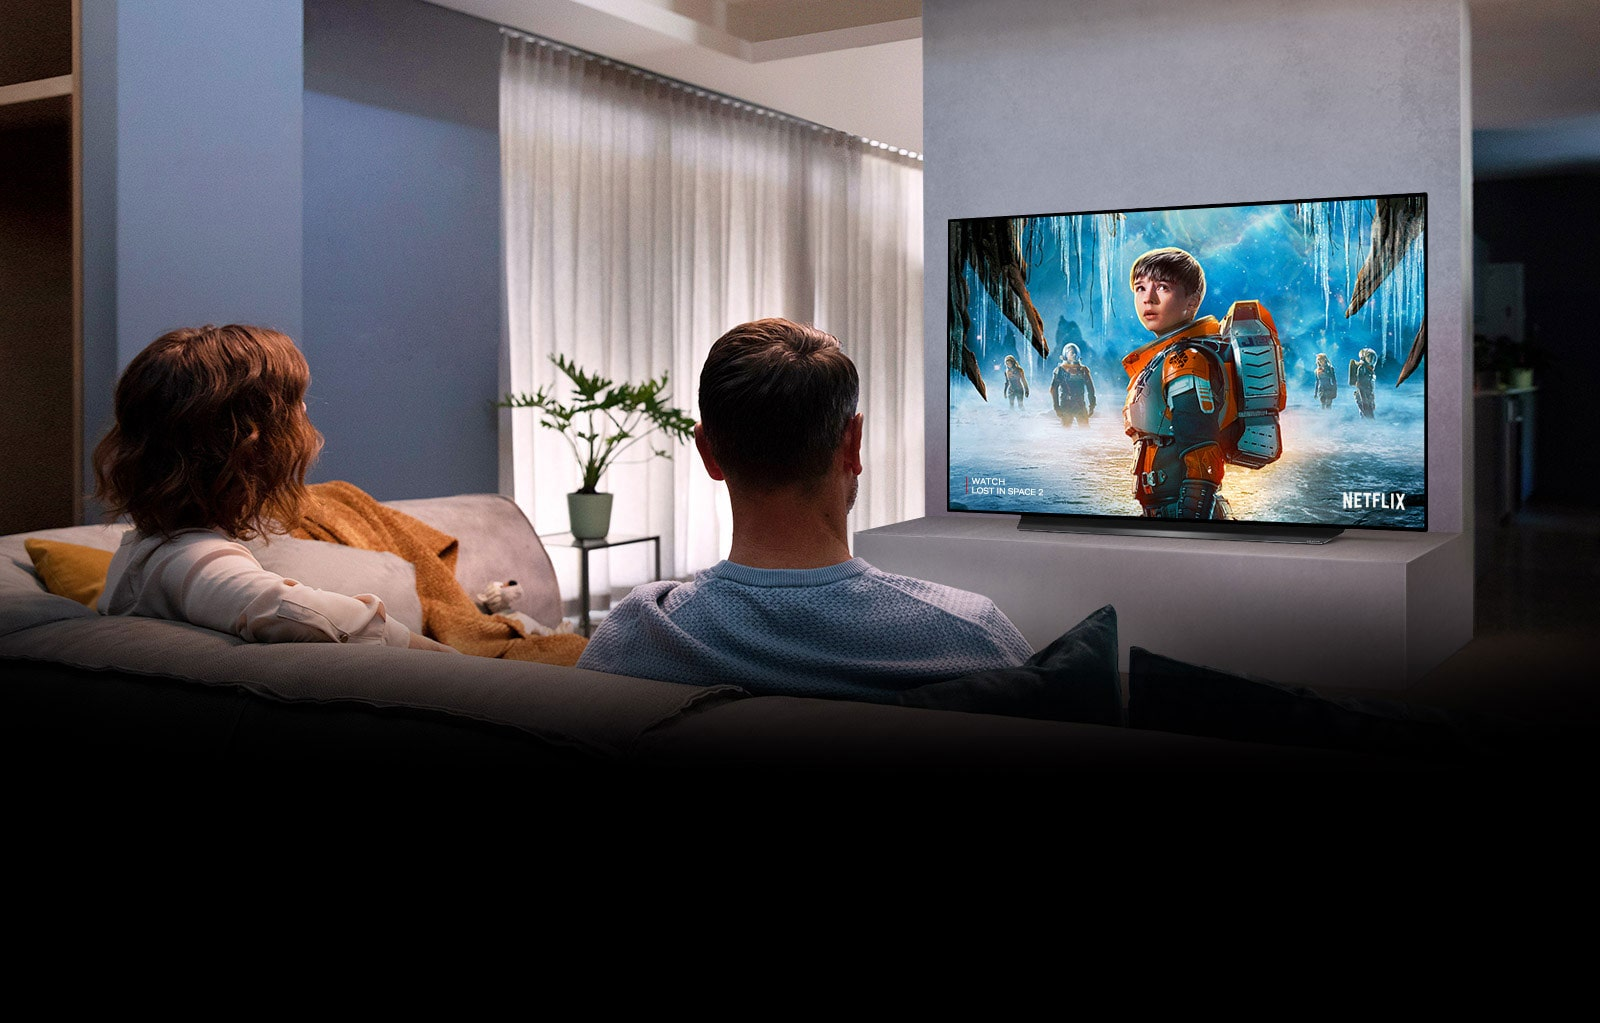 Couple sitting on a sofa in the living room watching a romantic movie on TV